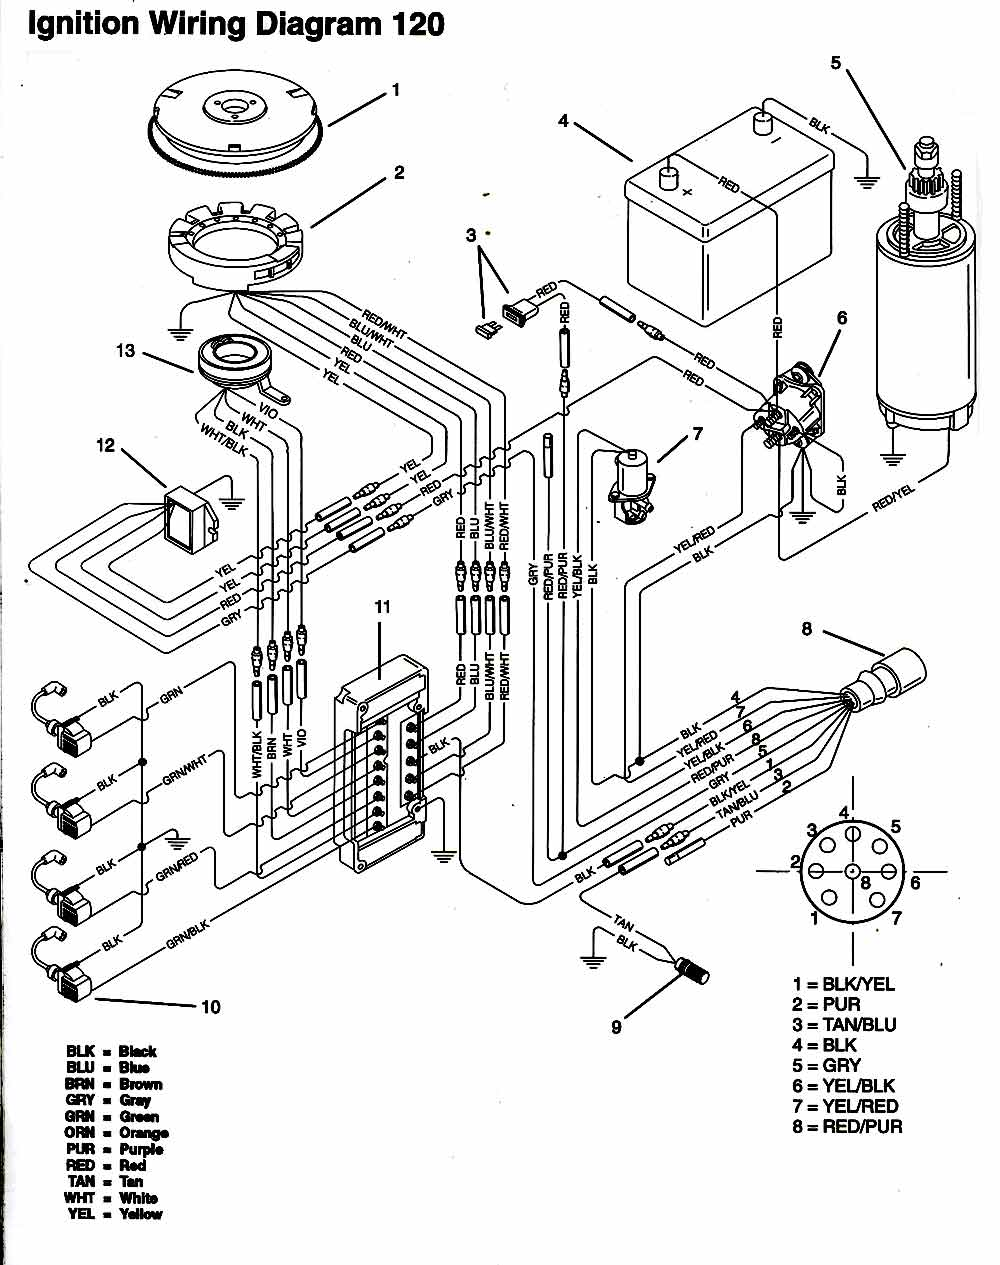 Yamaha 40 Hp 2 Stroke Outboard Wiring Diagram Free Picture - Wiring on 60 hp evinrude outboard diagrams, mercury outboard diagrams, mercury smartcraft gauges, mercury paint, mercury ranger, mercury 400r, mercury starter diagram, 89 jeep carburetor diagrams, mercury carburetor, mercury schematics, mercury electrical diagrams, mercury outboard motors, mercury parts diagrams, mercury tilt switch, mercury motor diagrams, mercury shifter diagram, mercury key switch diagram, boat battery hookup diagrams,